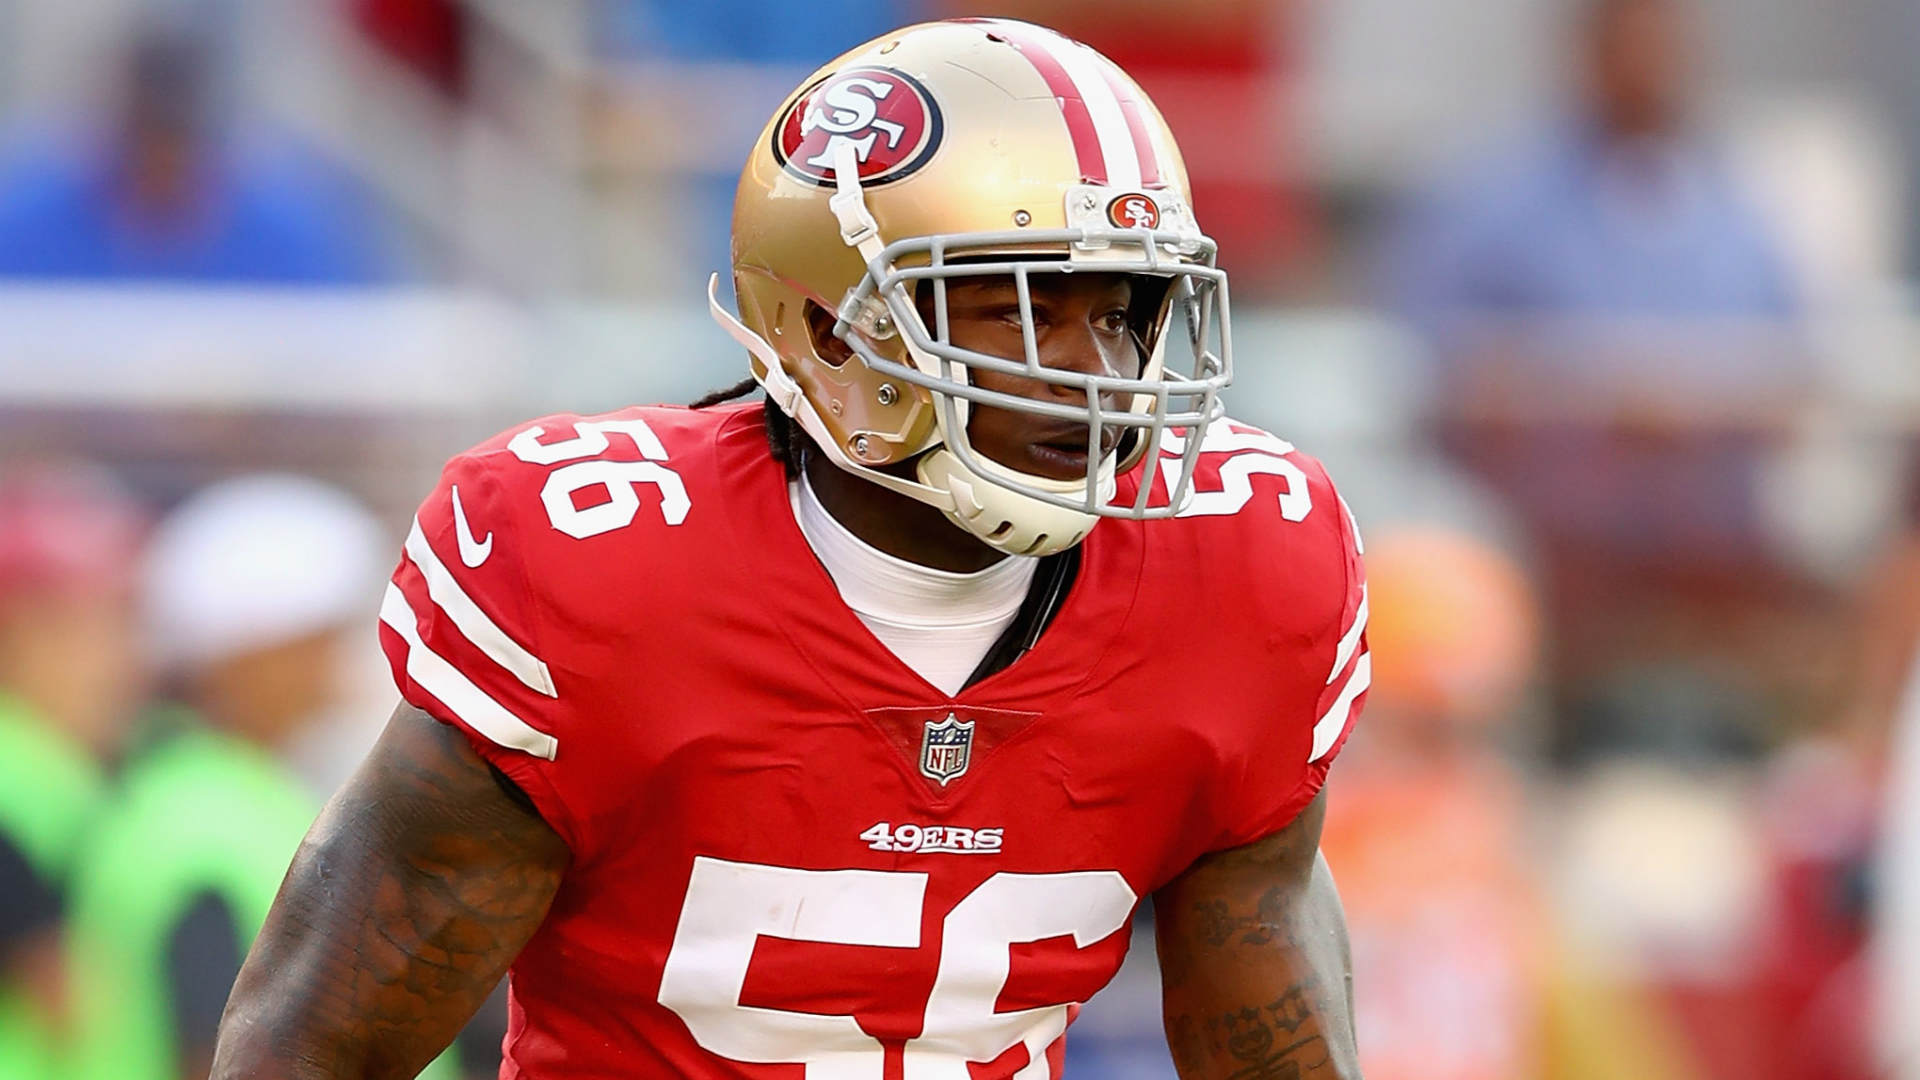 Reuben Foster of the SF 49ers arrested in Tuscaloosa